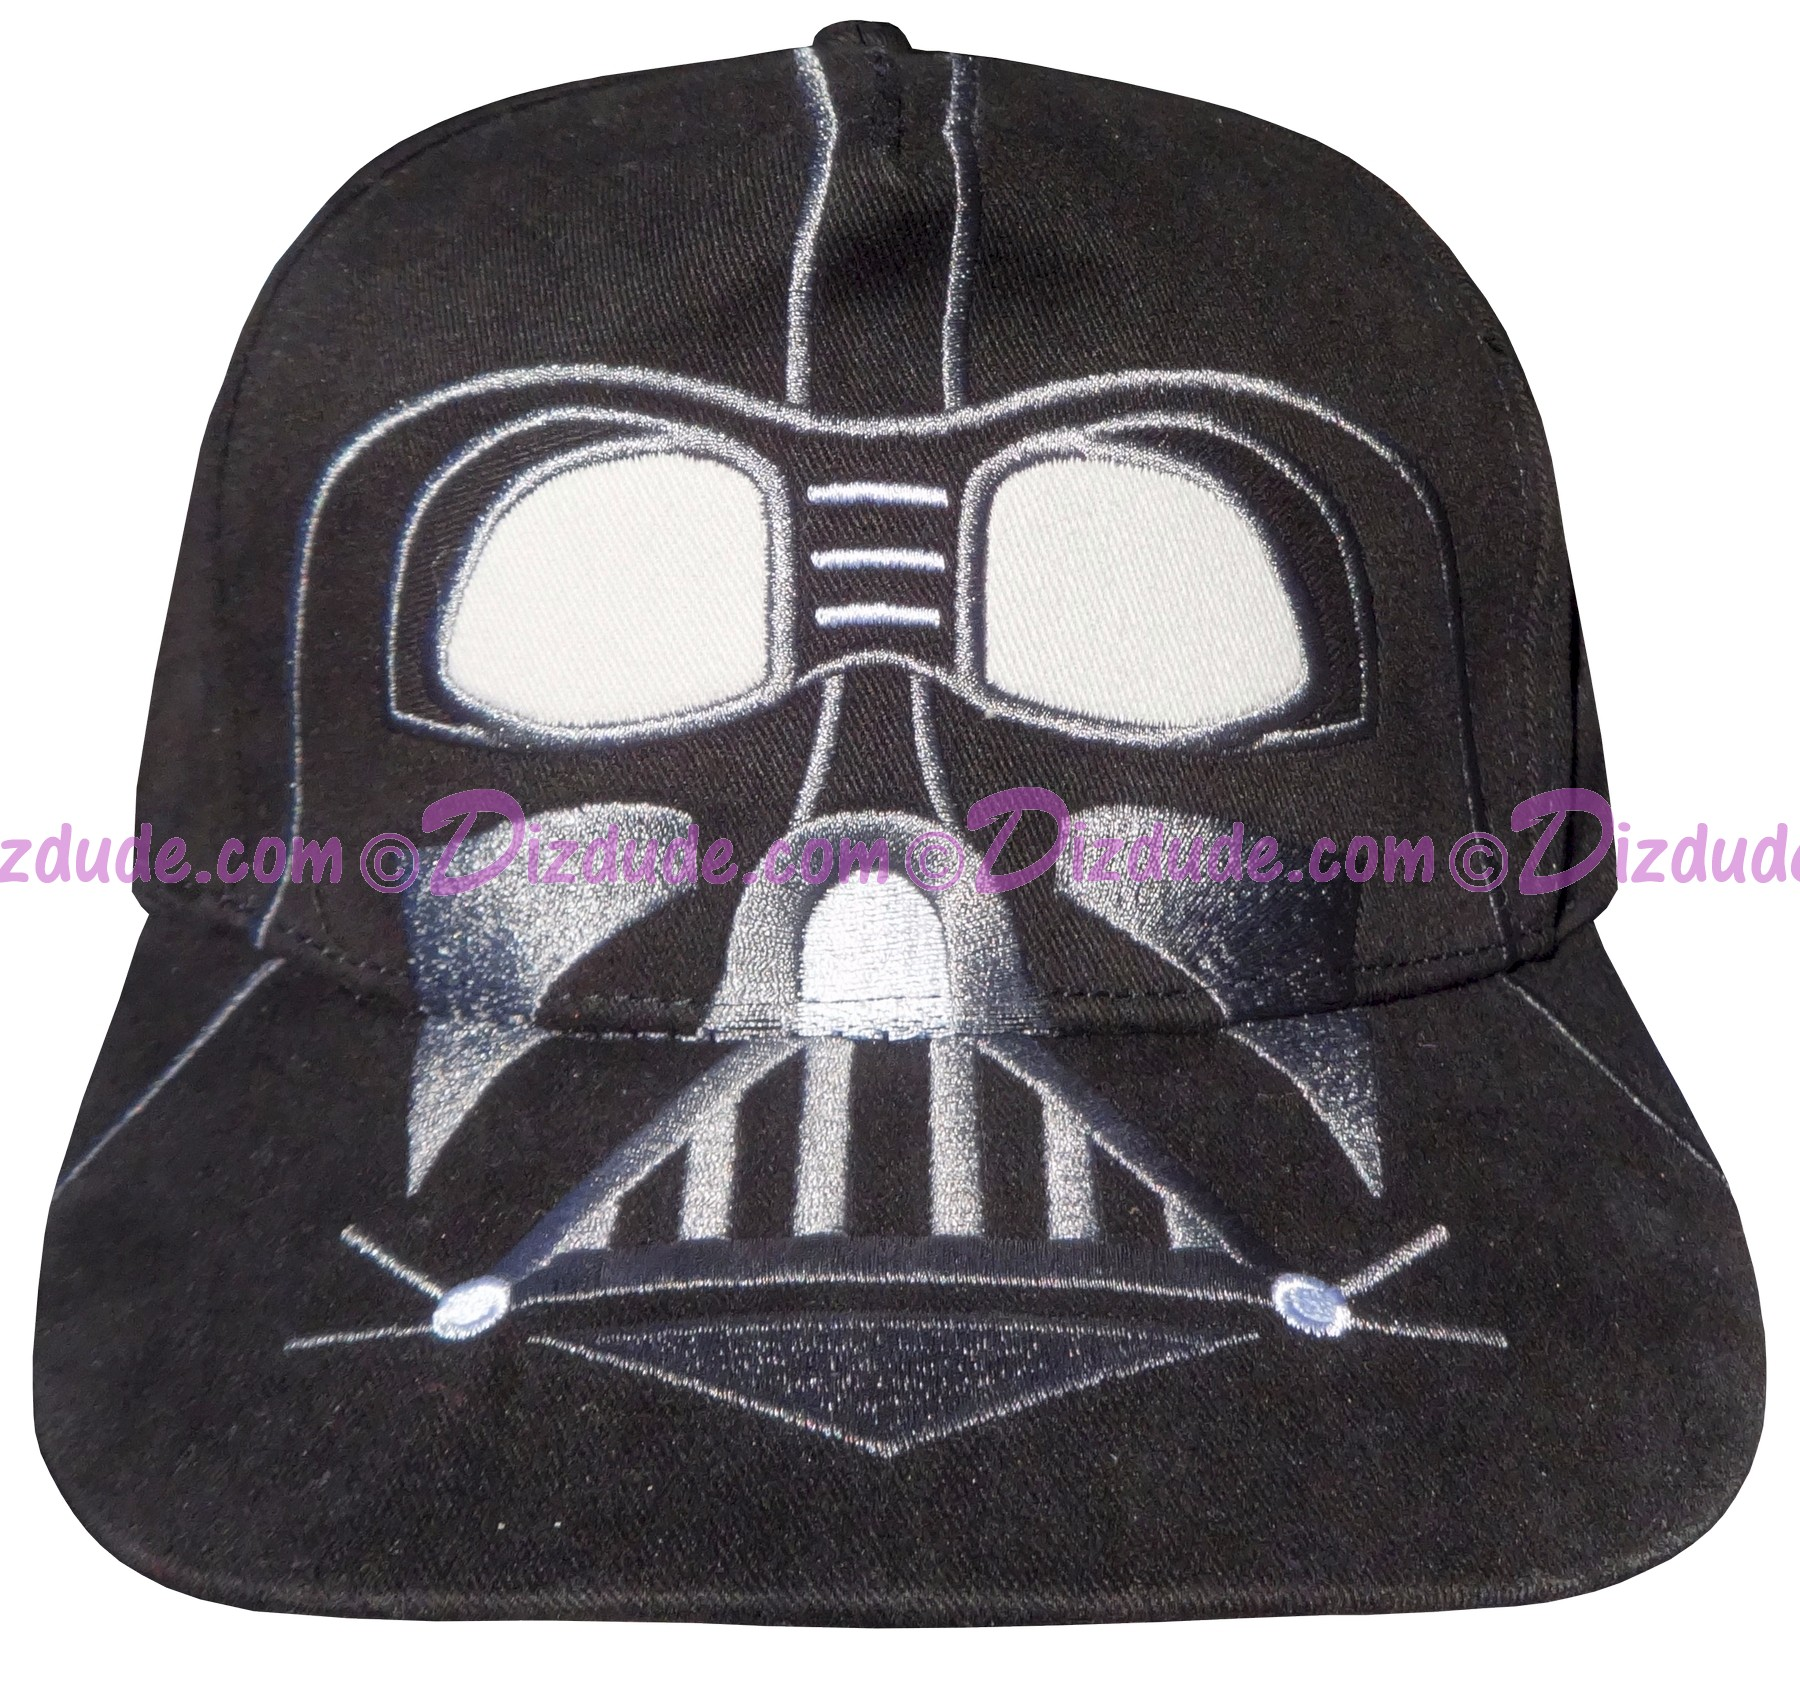 (SOLD OUT) Disney Star Tours Darth Vader Novelty Youth Baseball Cap - Walt Disney World Exclusive